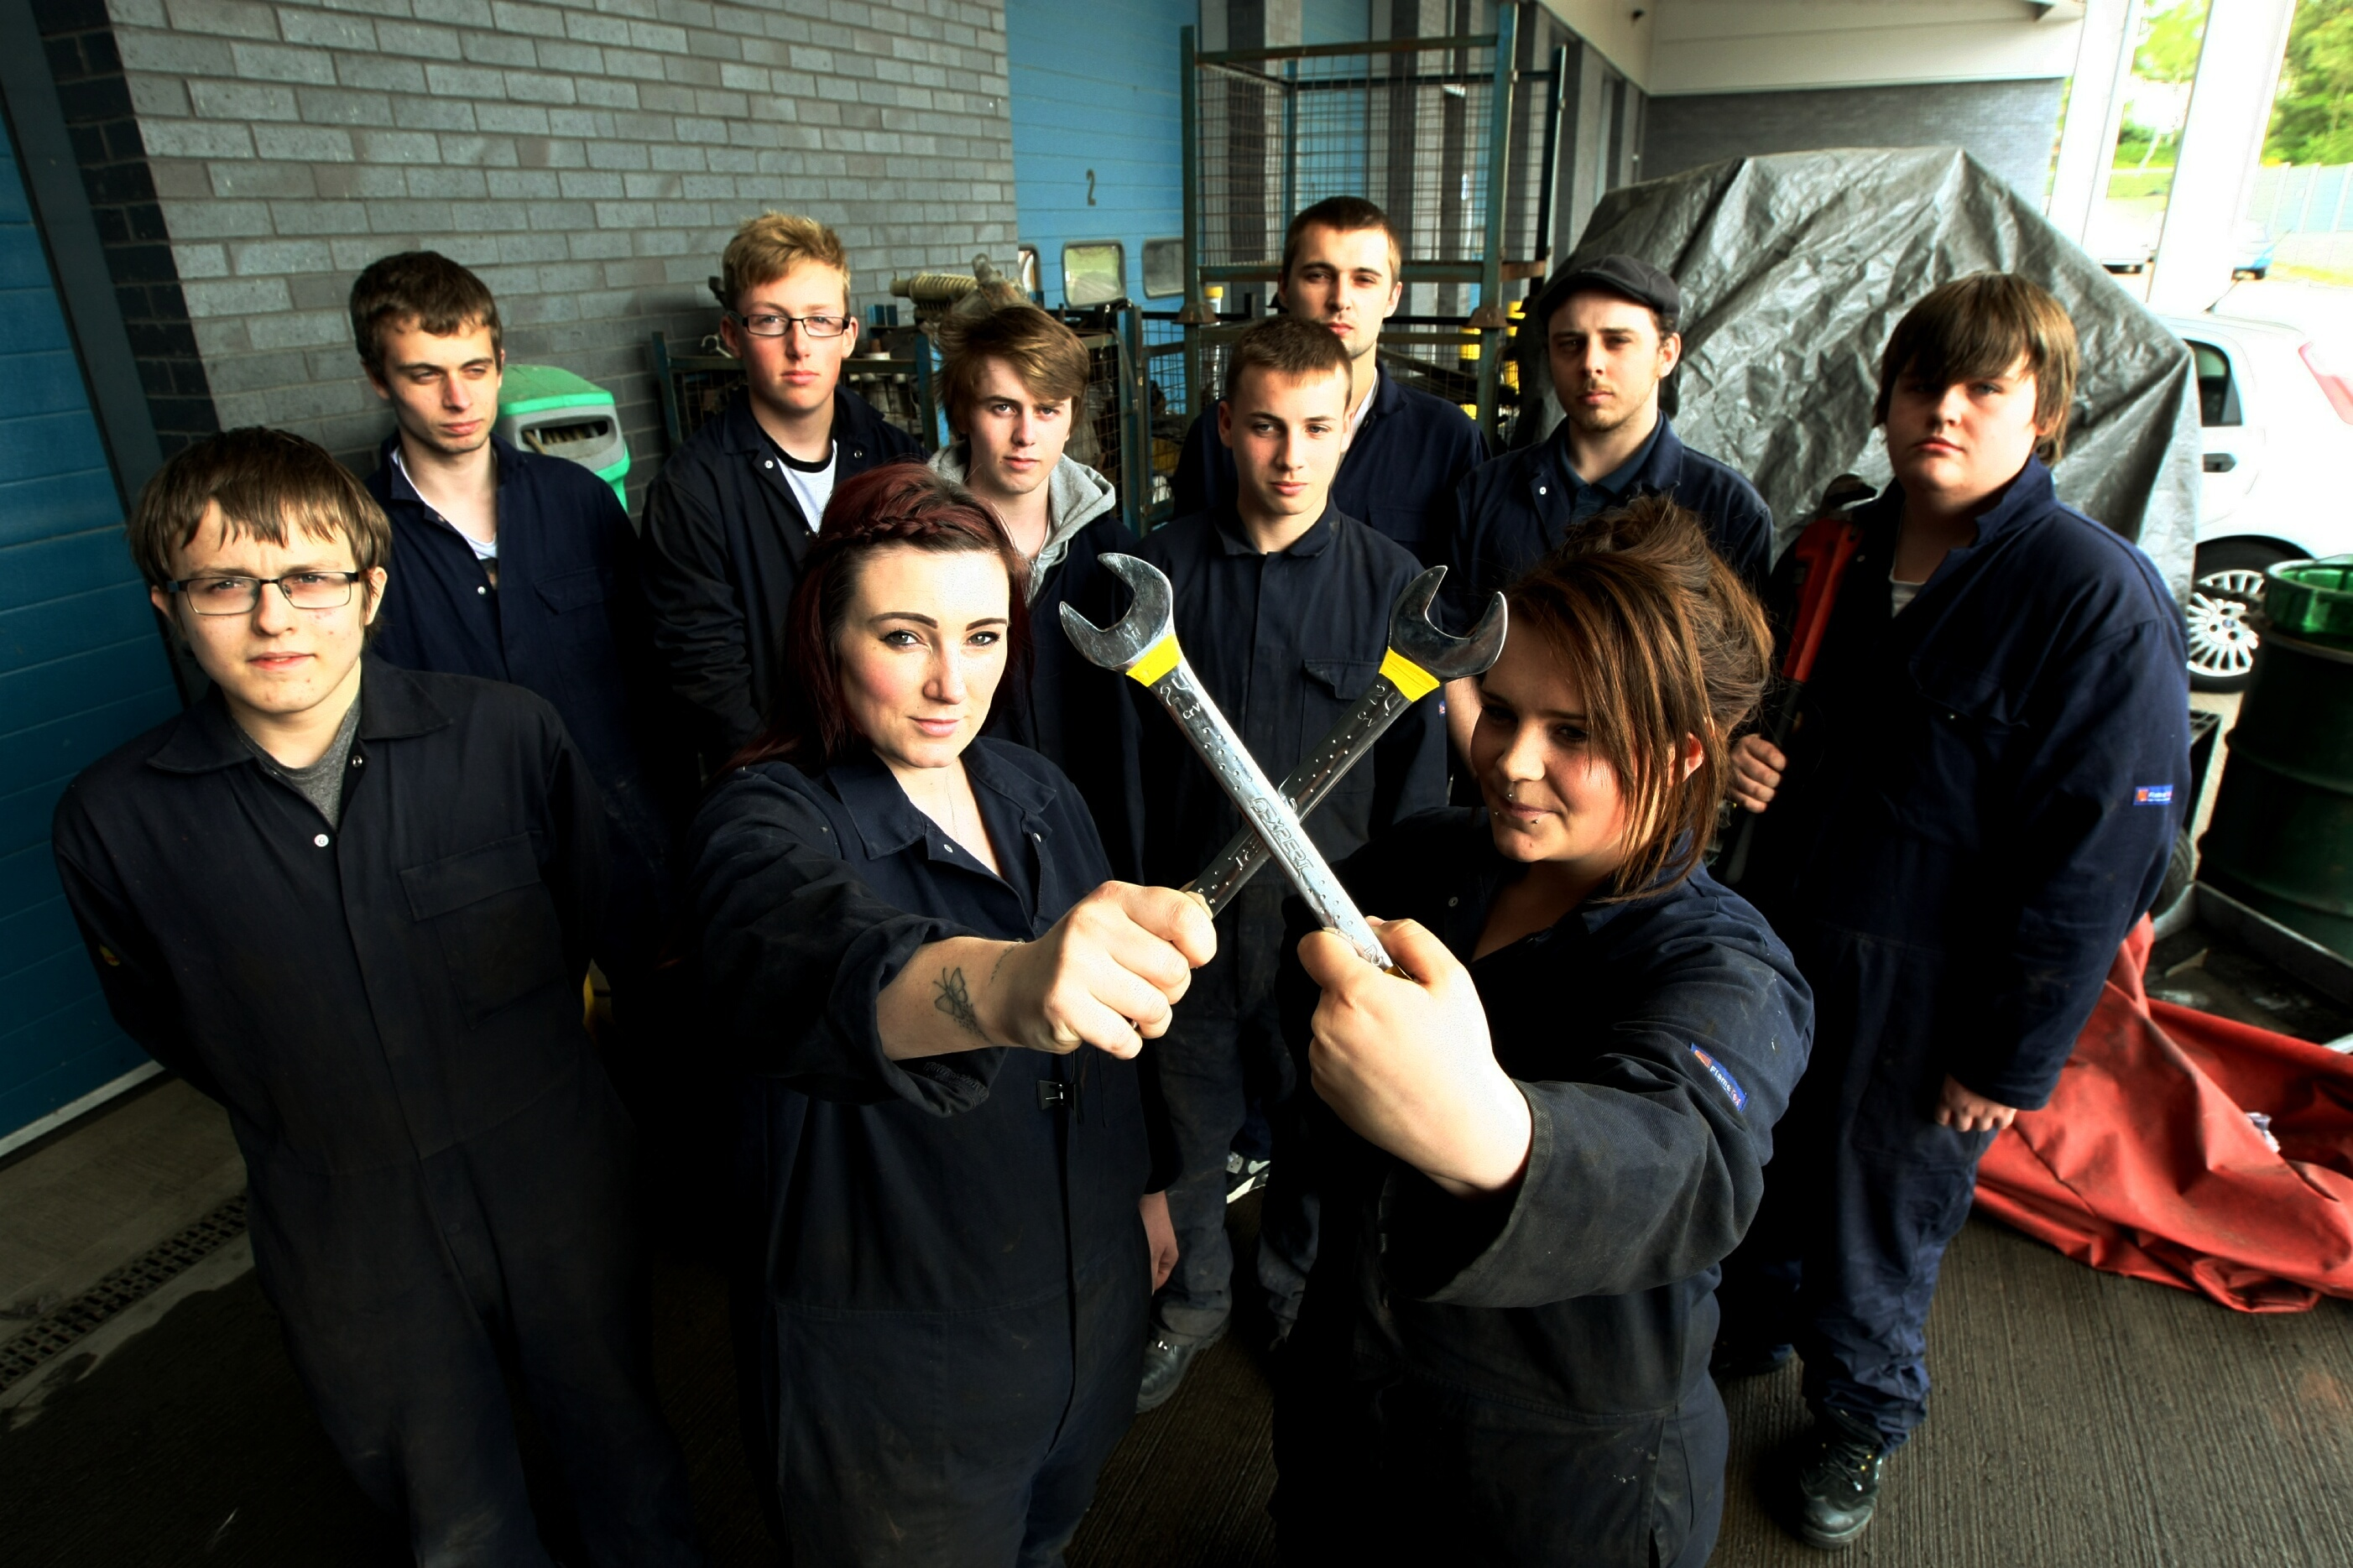 Some of the automotive maintenance students who have signed the petition to save the course.